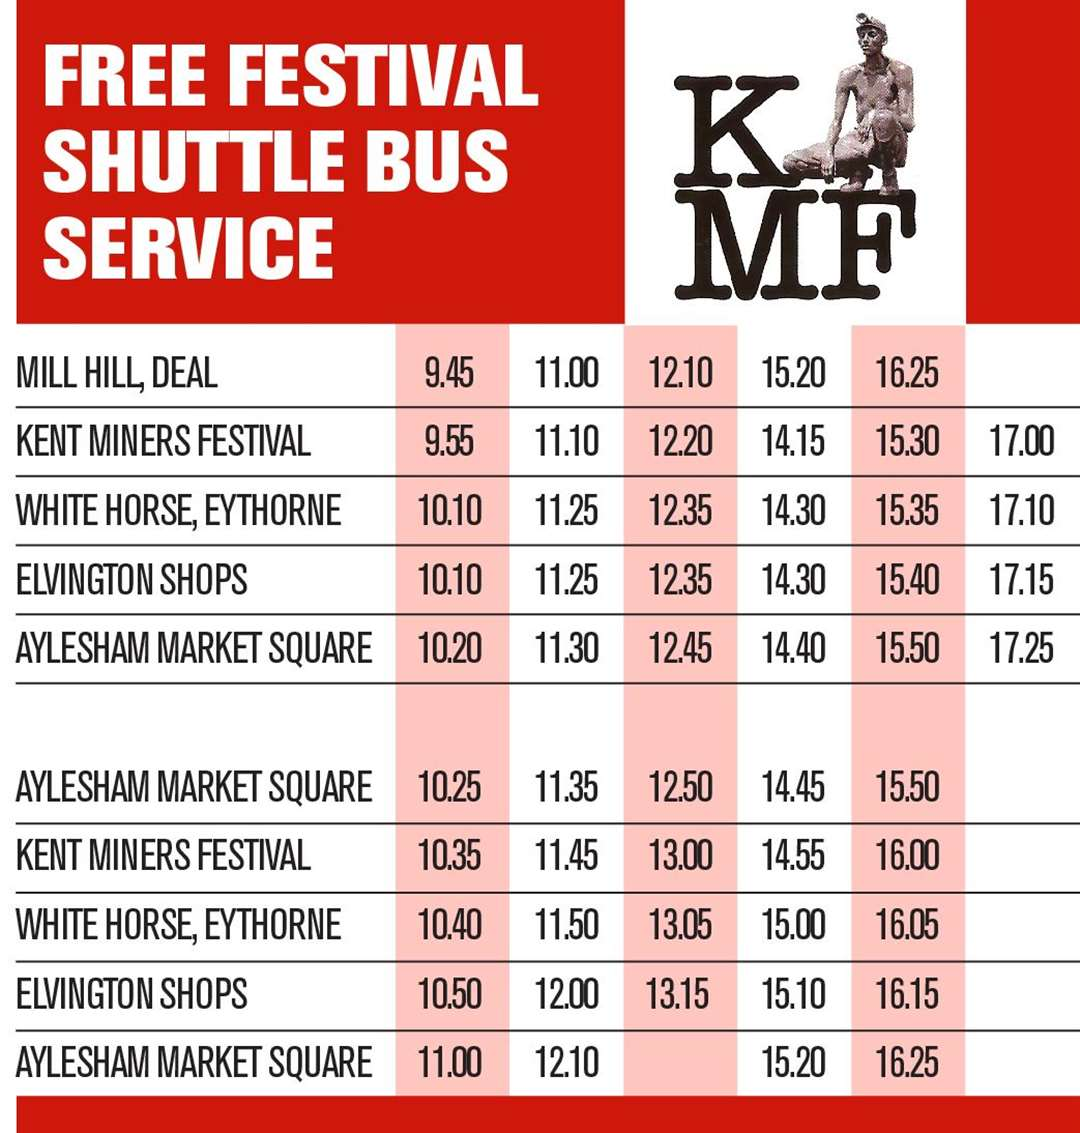 The bus to the Kent Miners Festival is free but spaces are limited